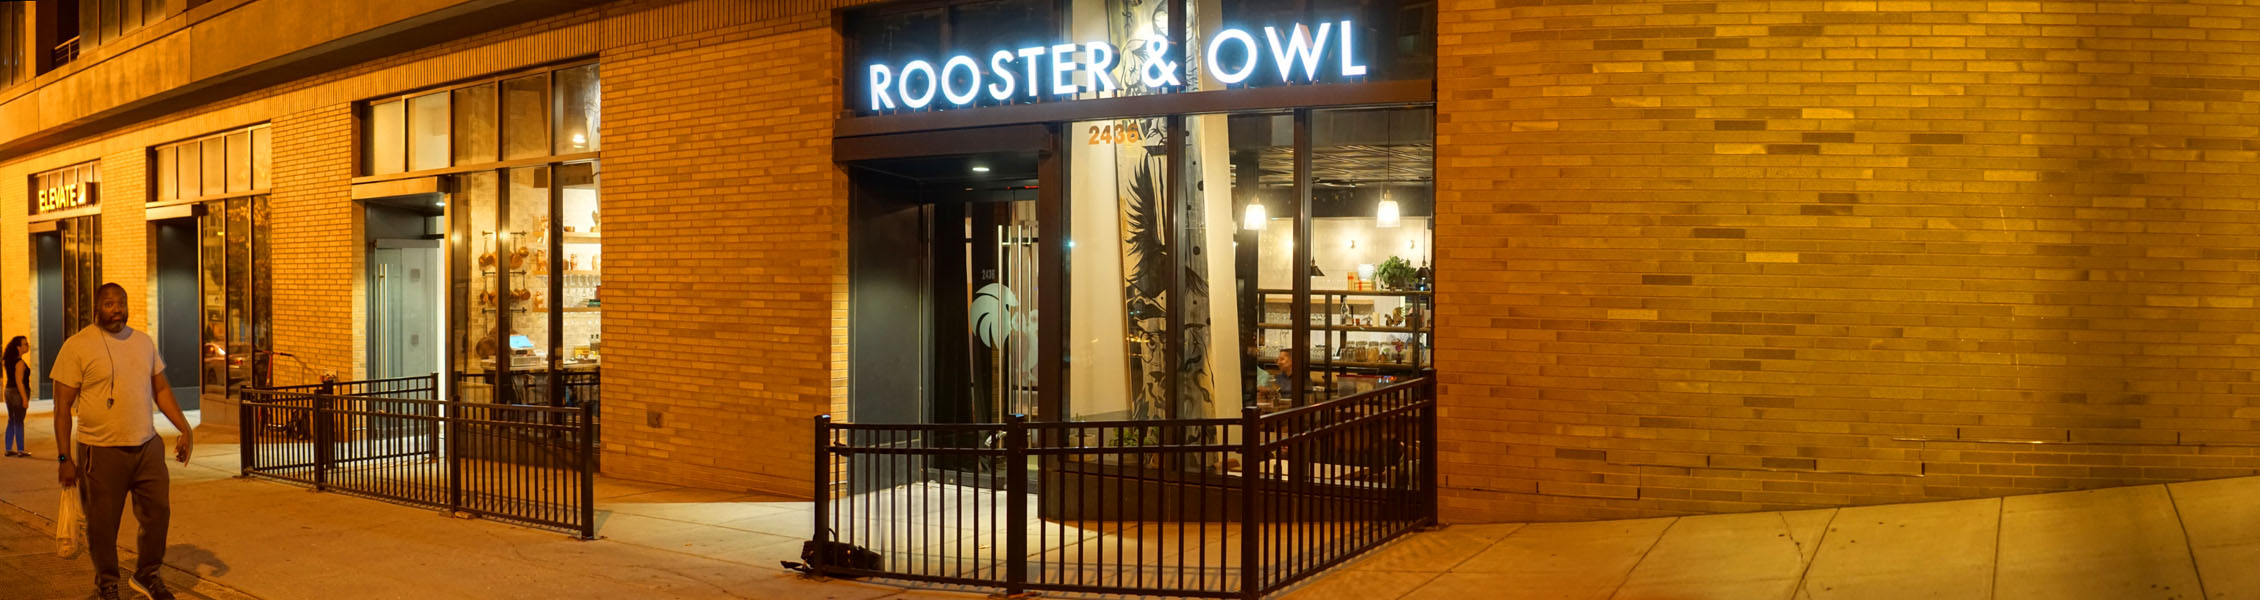 Rooster & Owl Exterior